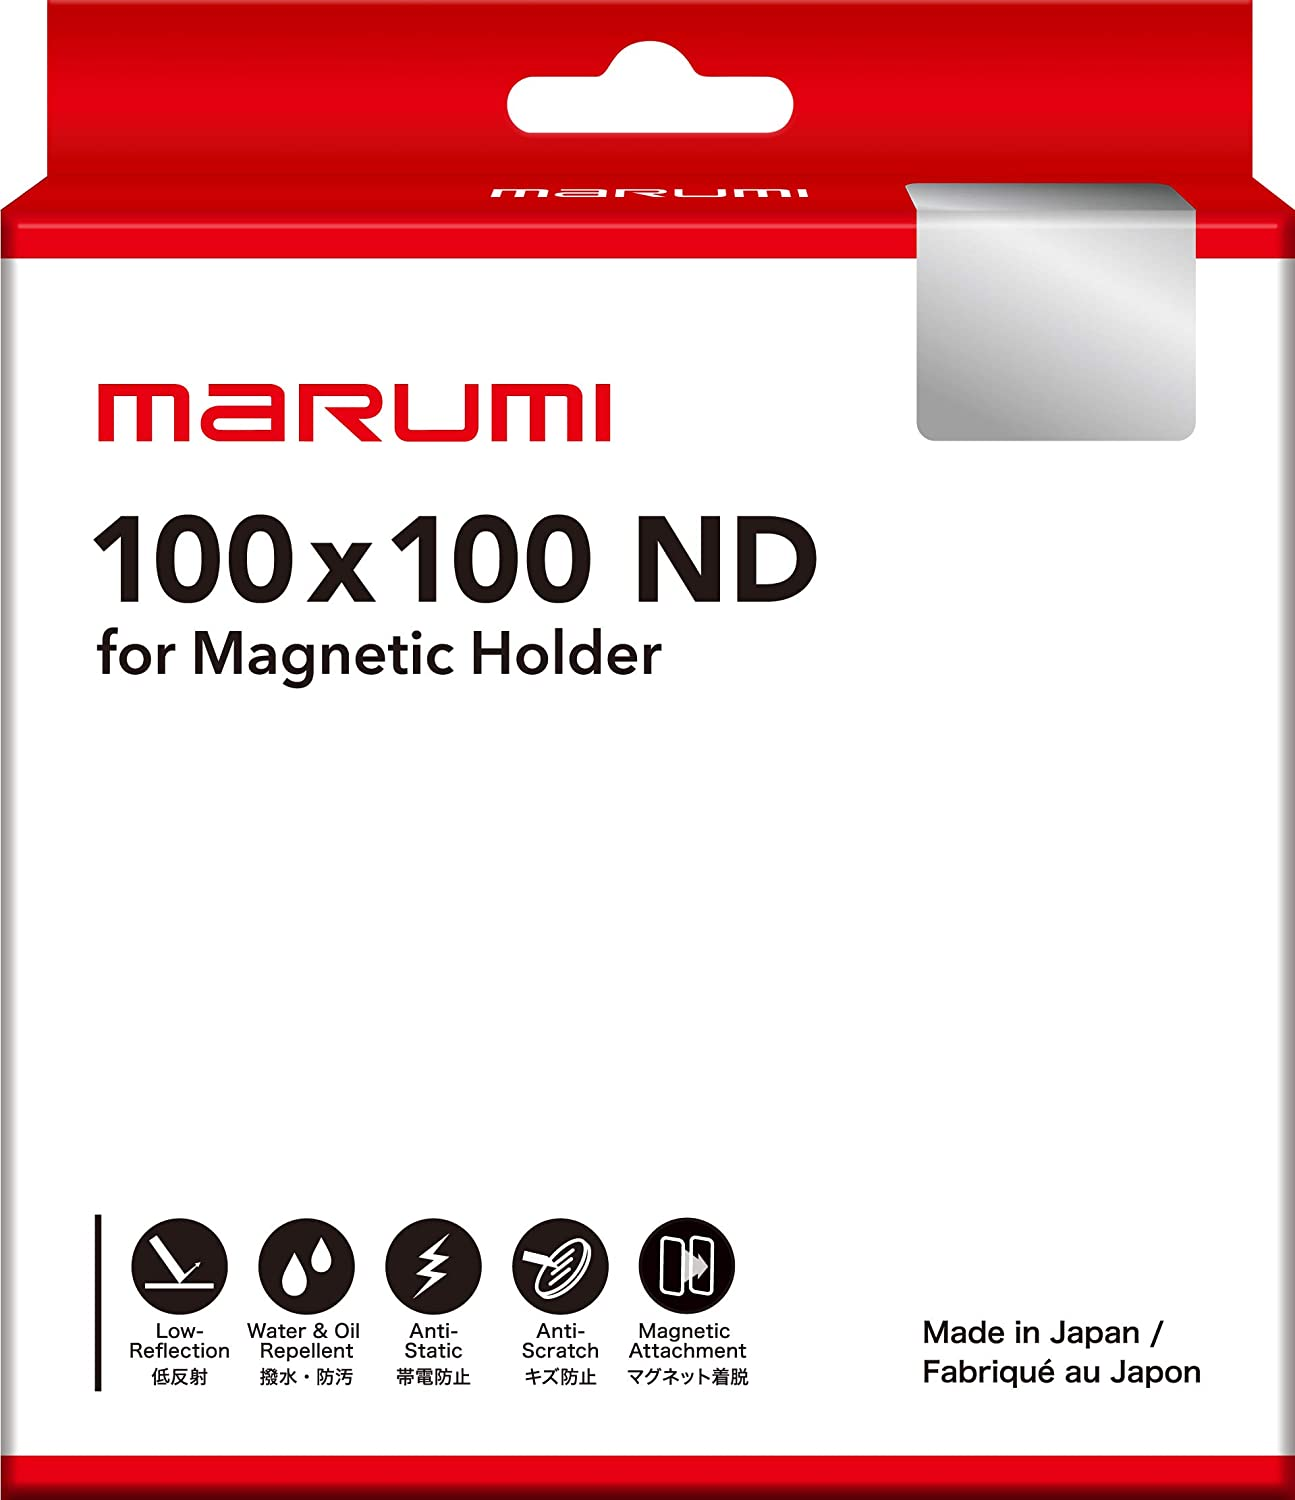 Marumi 100mm ND4 Magnetic Filter Schott Glass H/&Y 100Hot Swap Neutral Density ND0.6 Made in Japan